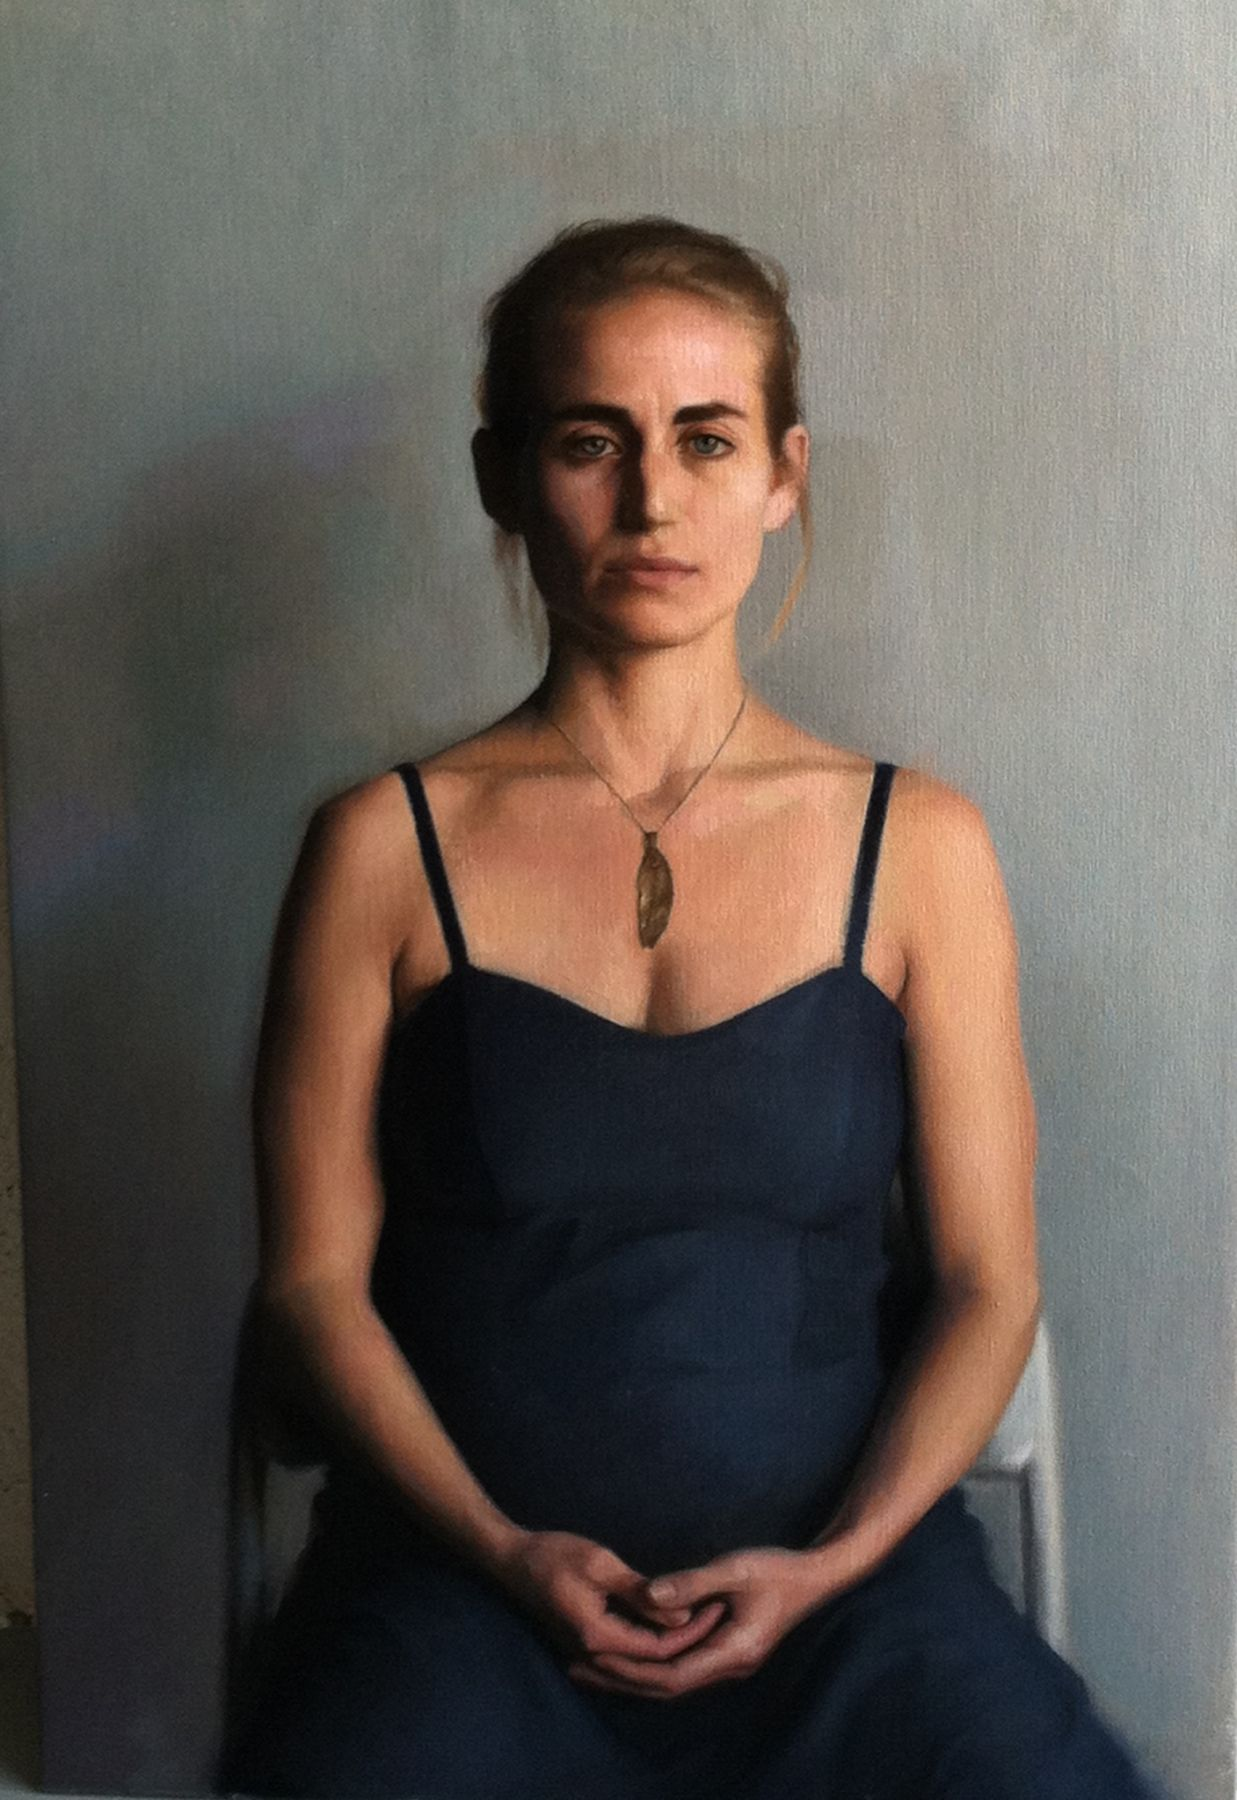 Jesus Villarreal, Rachel, 2012-13, oil on linen, 25 1/2 x 38 1/4 inches